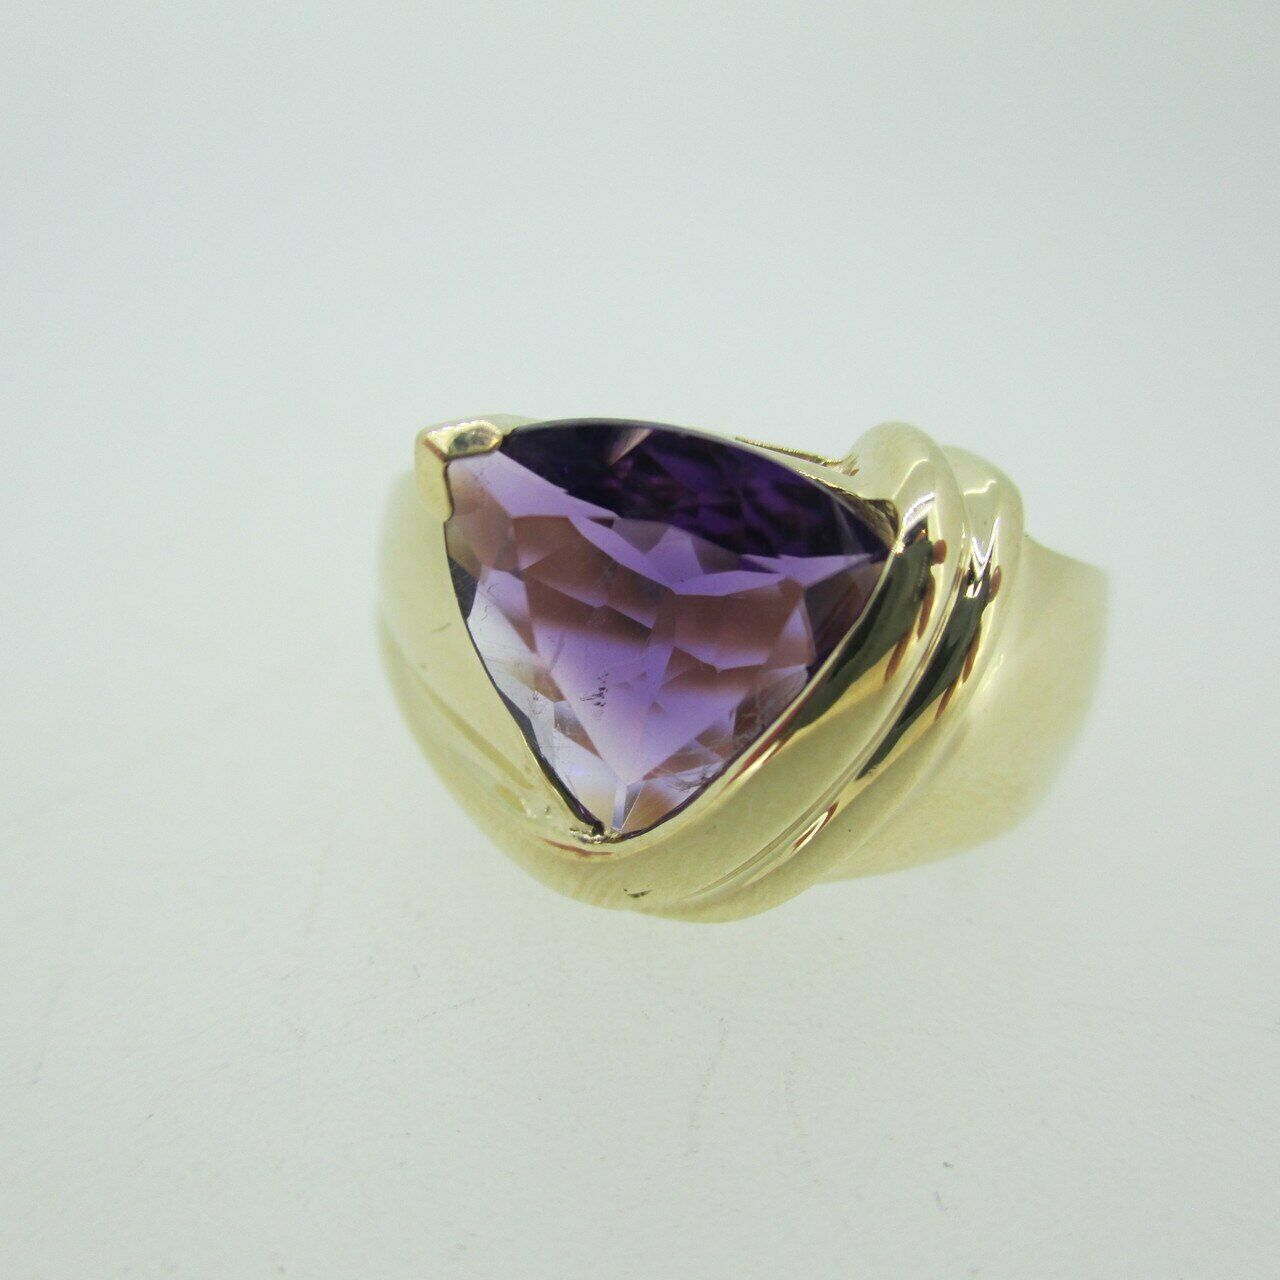 10k Yellow gold Trillion Cut Amethyst Fashion Ring Size 7 1 4